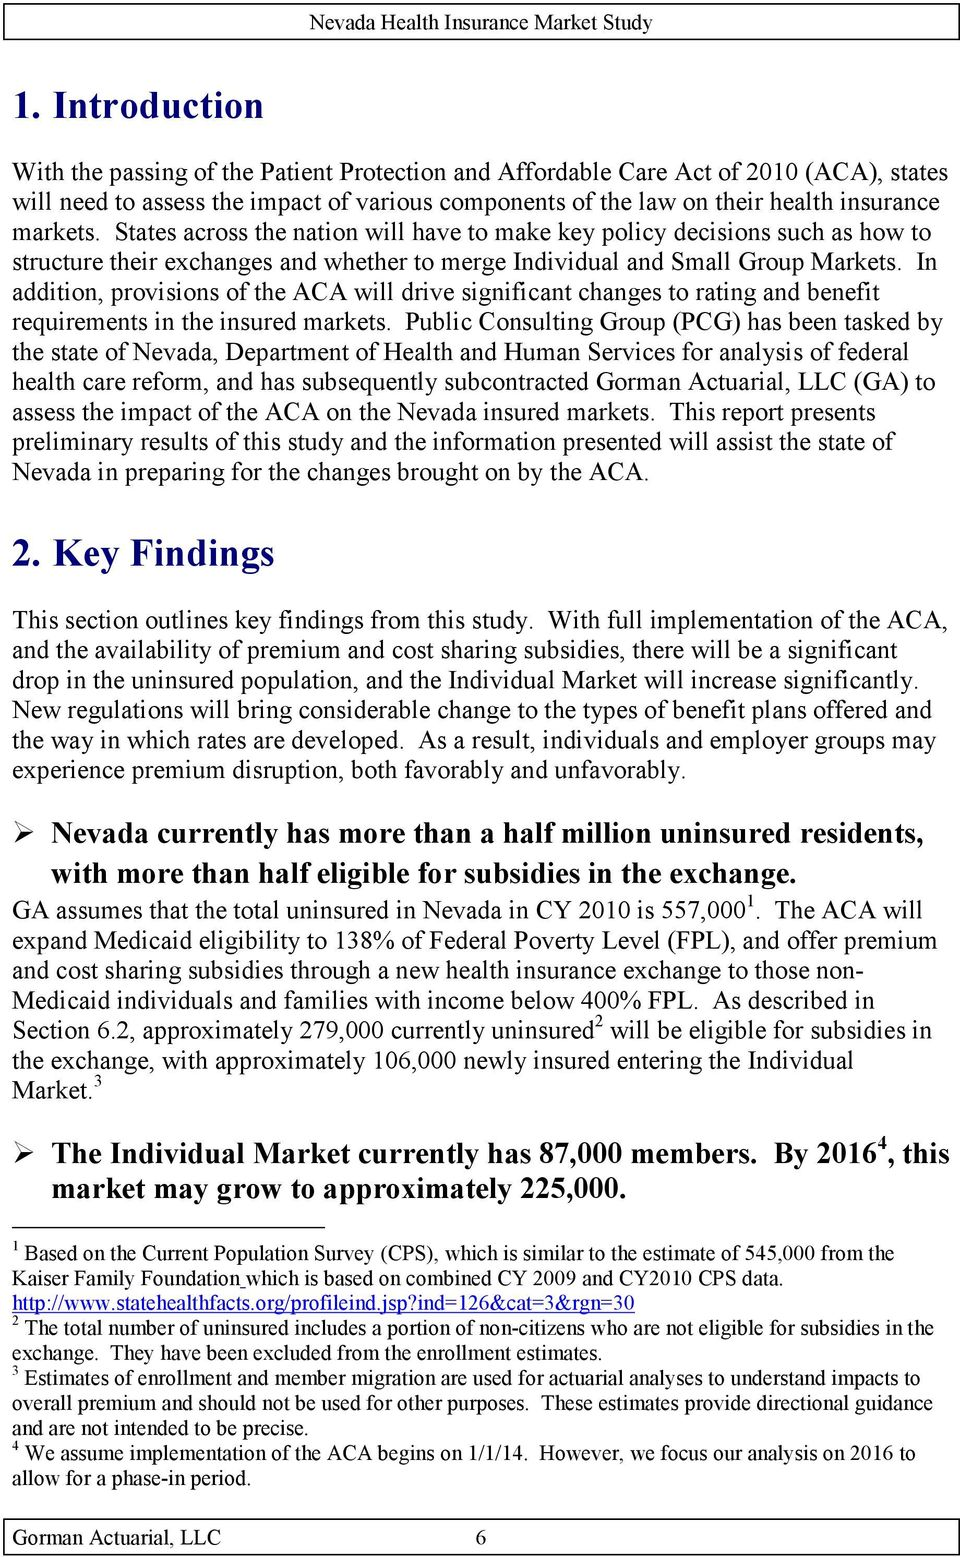 In addition, provisions of the ACA will drive significant changes to rating and benefit requirements in the insured markets.